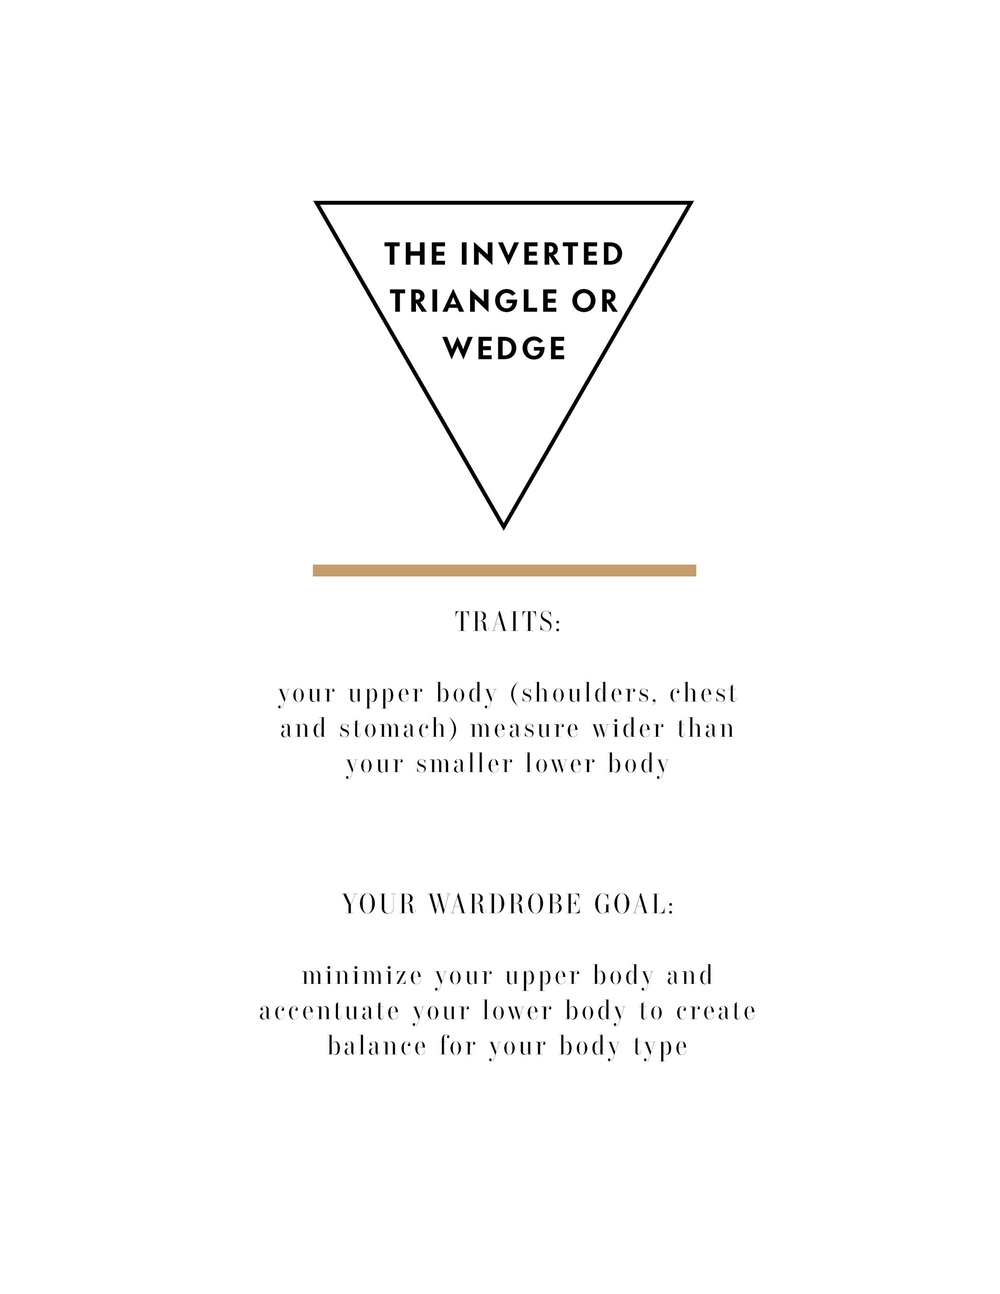 What to Wear Guide - Digital PDF-9-Left.jpg